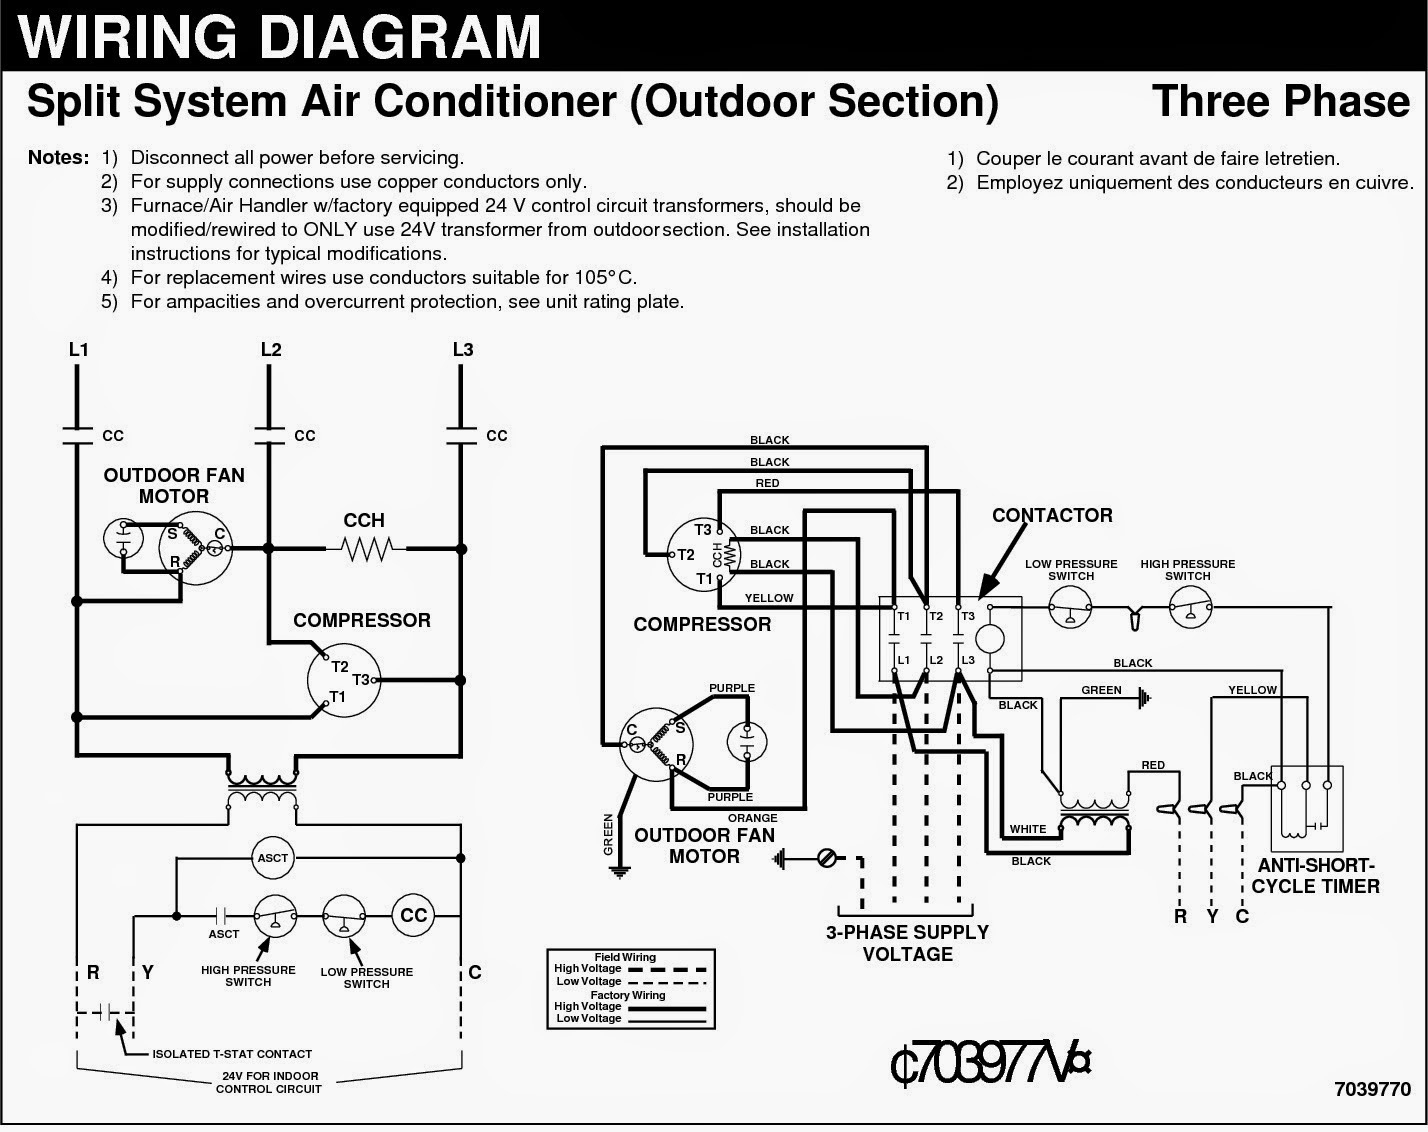 Home Air Conditioner Wiring Diagram - Wiring Diagrams Hubs - Ac Wiring Diagram